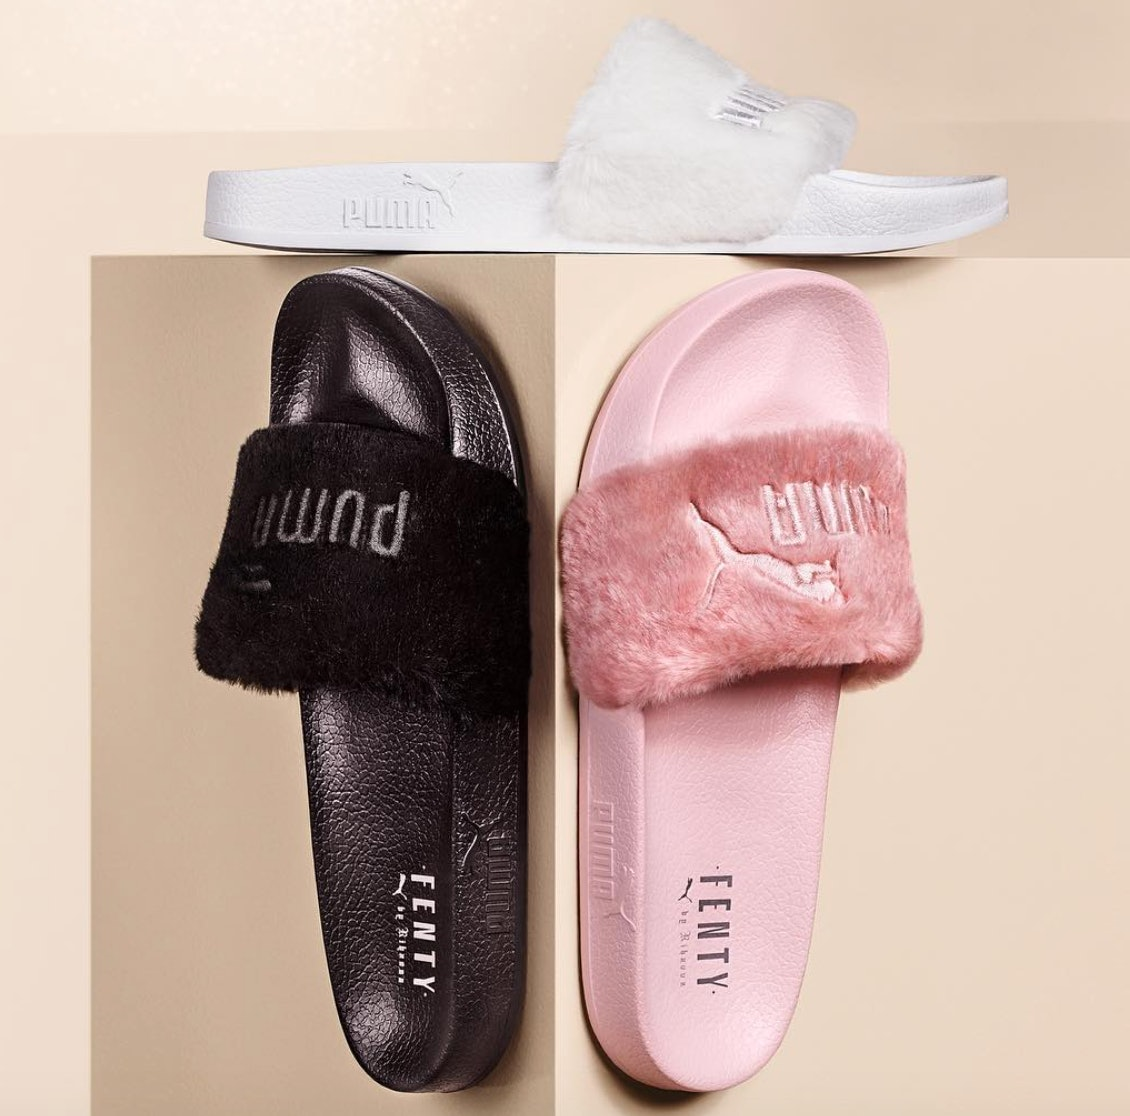 Are Rihanna Puma Fur Slides Worth It  They Aren t Shower Shoes But They  Sure Are Comfy — PHOTOS 8a158db8ee5b